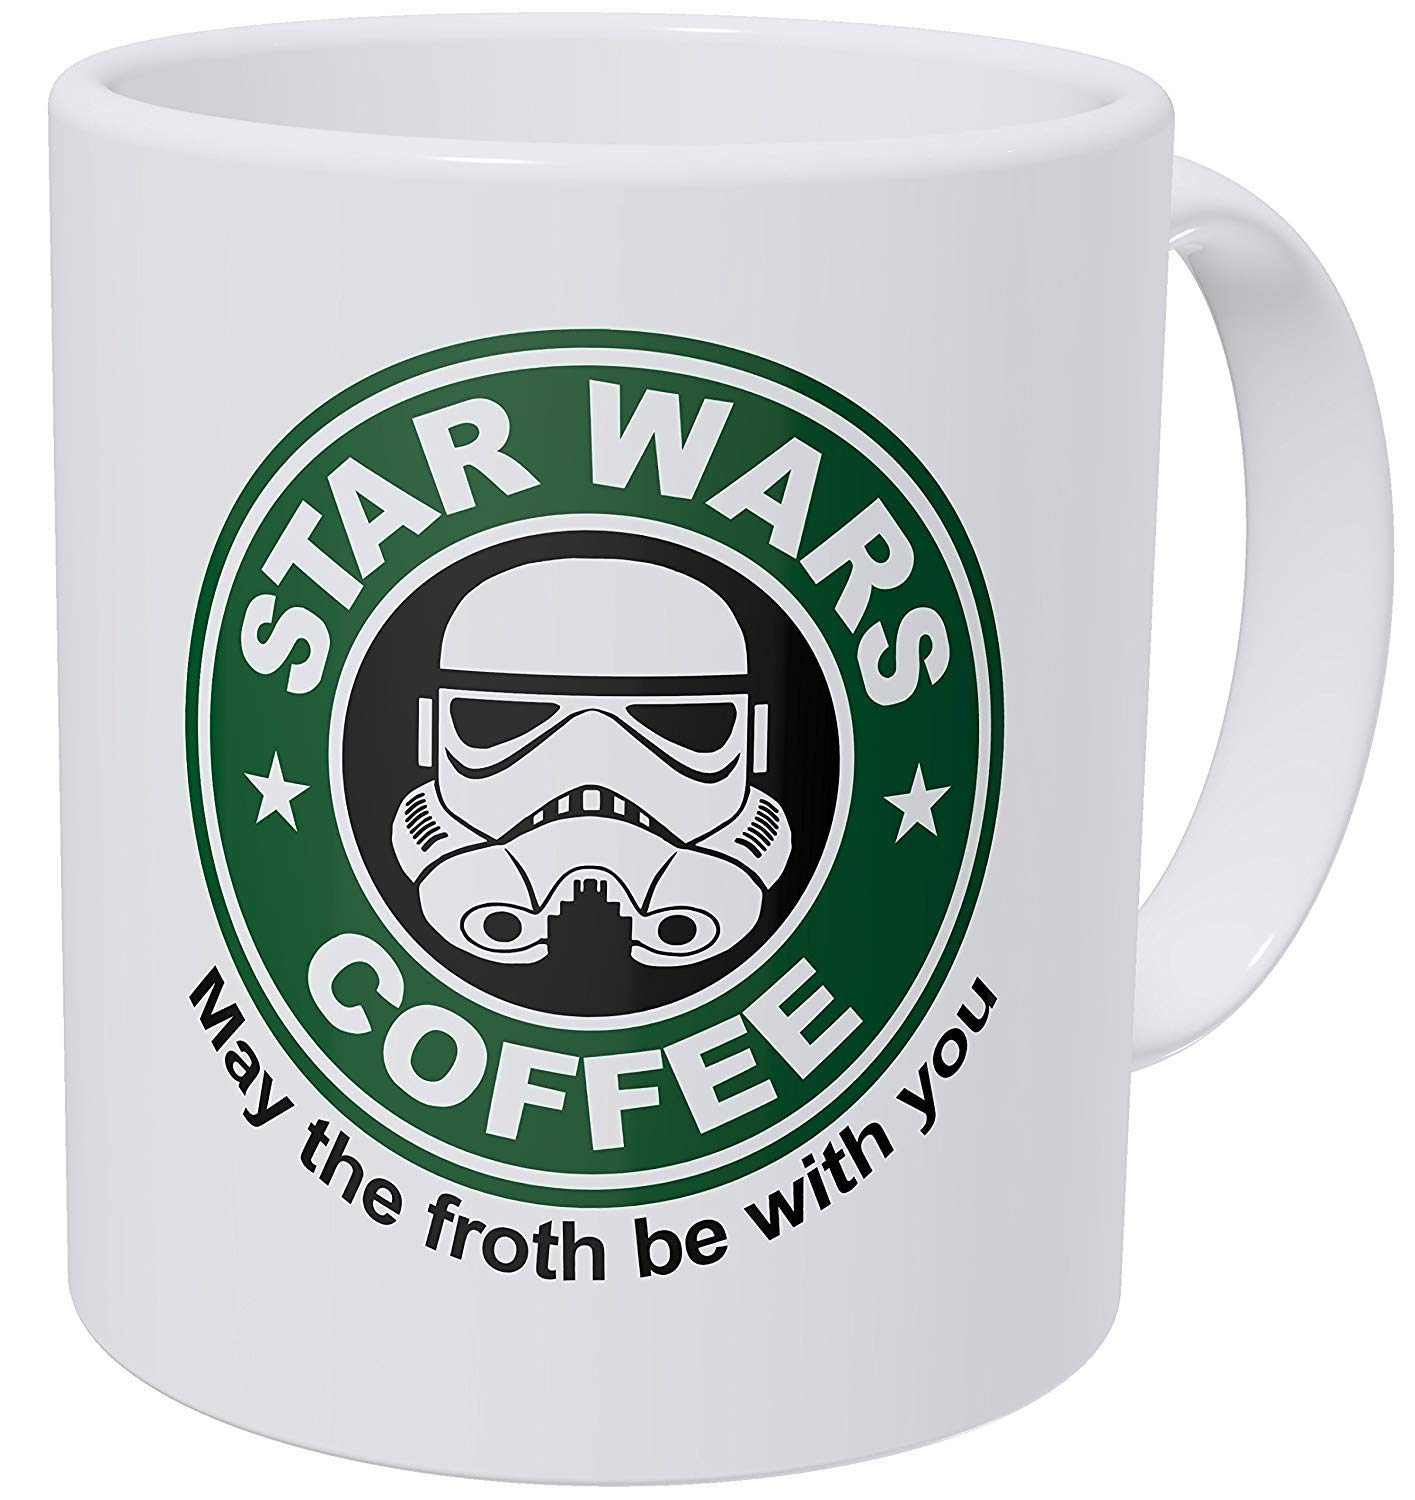 Starwars May The Froth Be With You 11 Ounces Funny Coffee